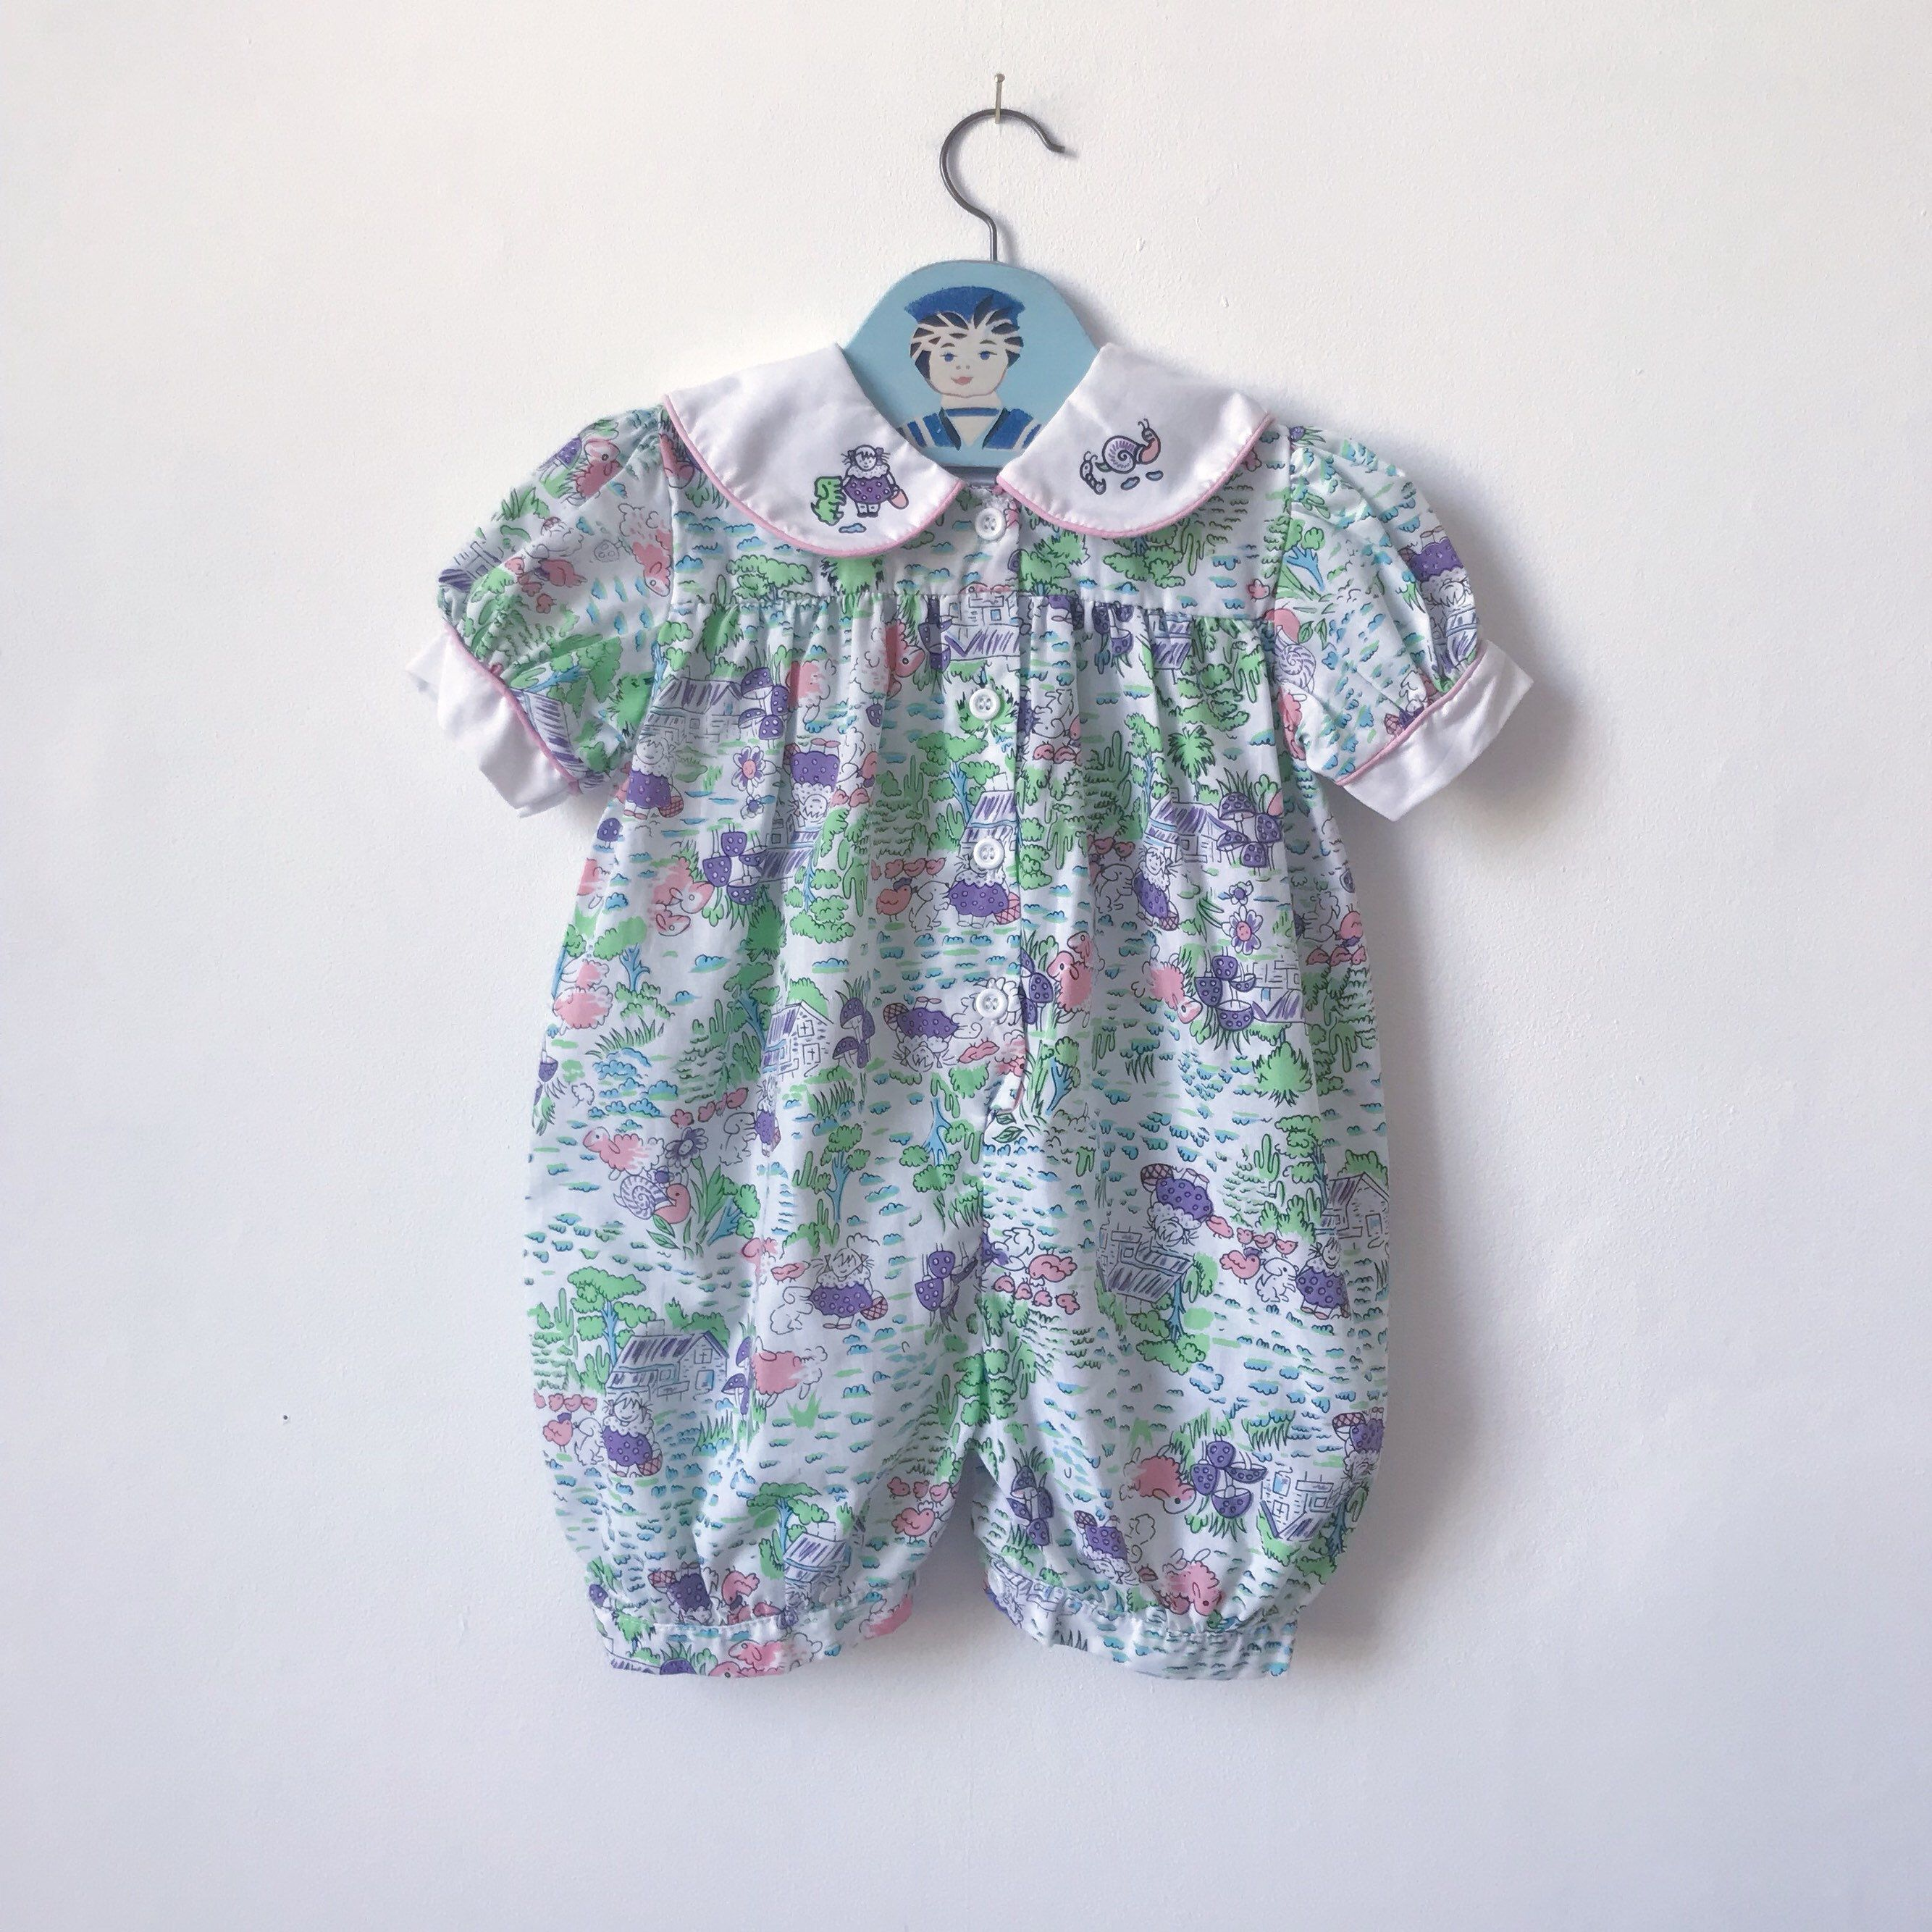 1980s Baby Rompers Vintage Baby Romper All In One Bubble Romper